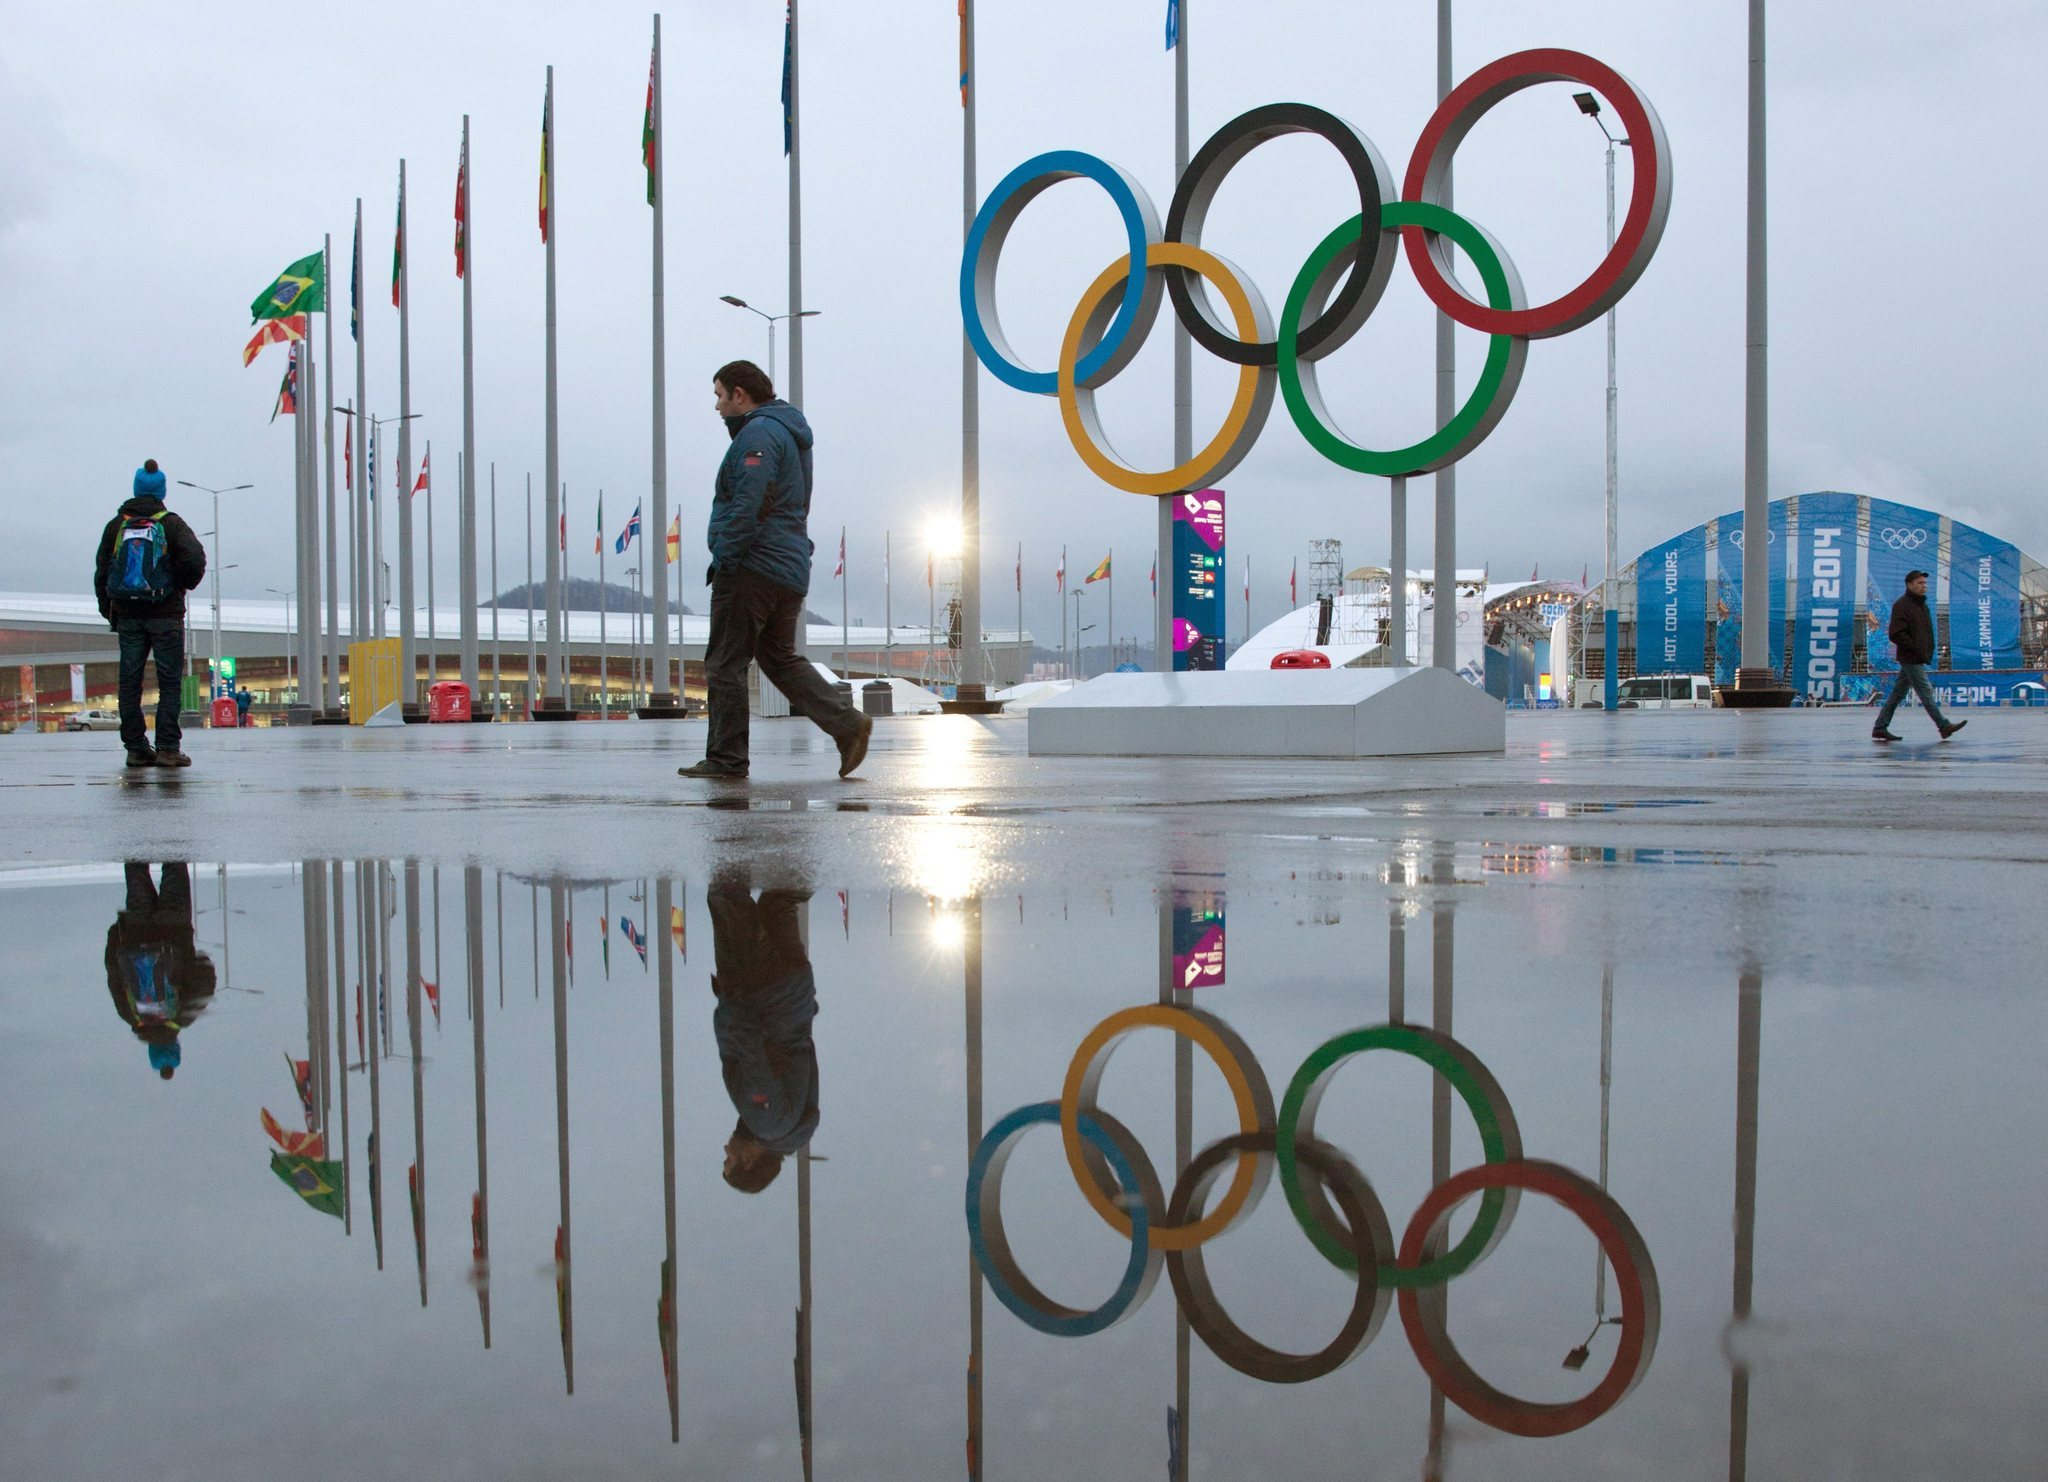 So far, a quiet, secure feeling in Sochi Olympic Park